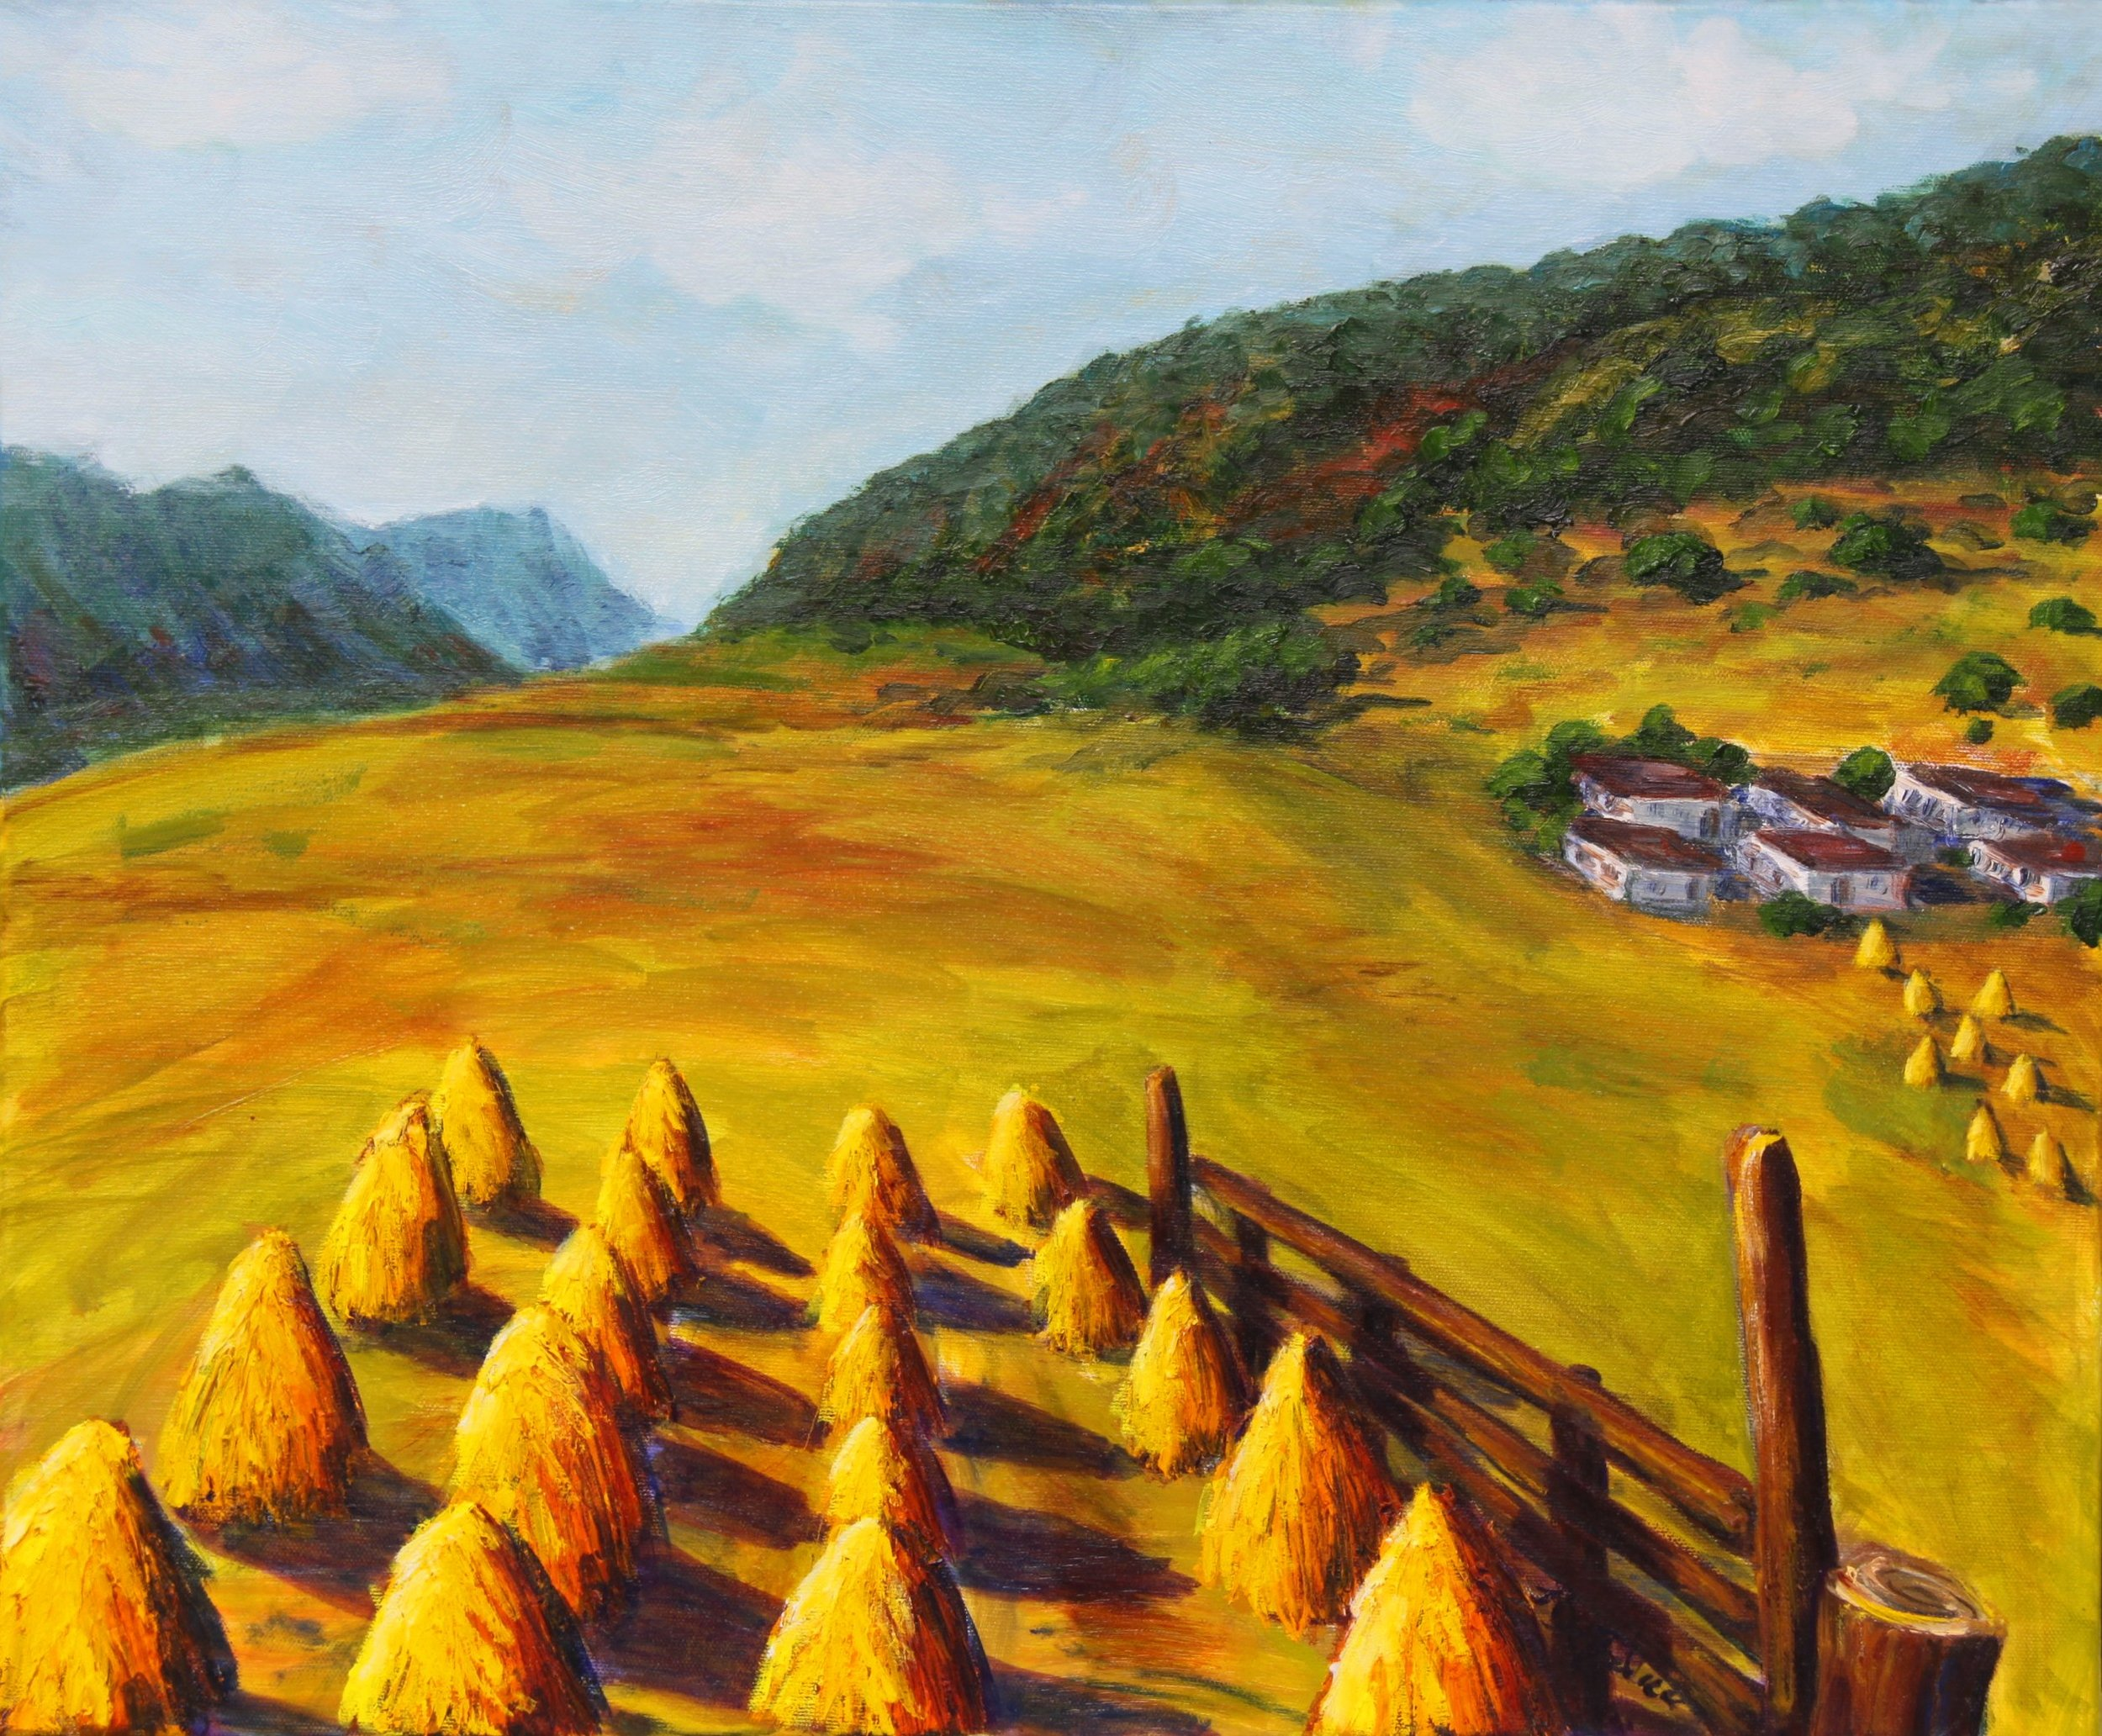 Jill DeFelice , Haystacks in Yunnan Province, China